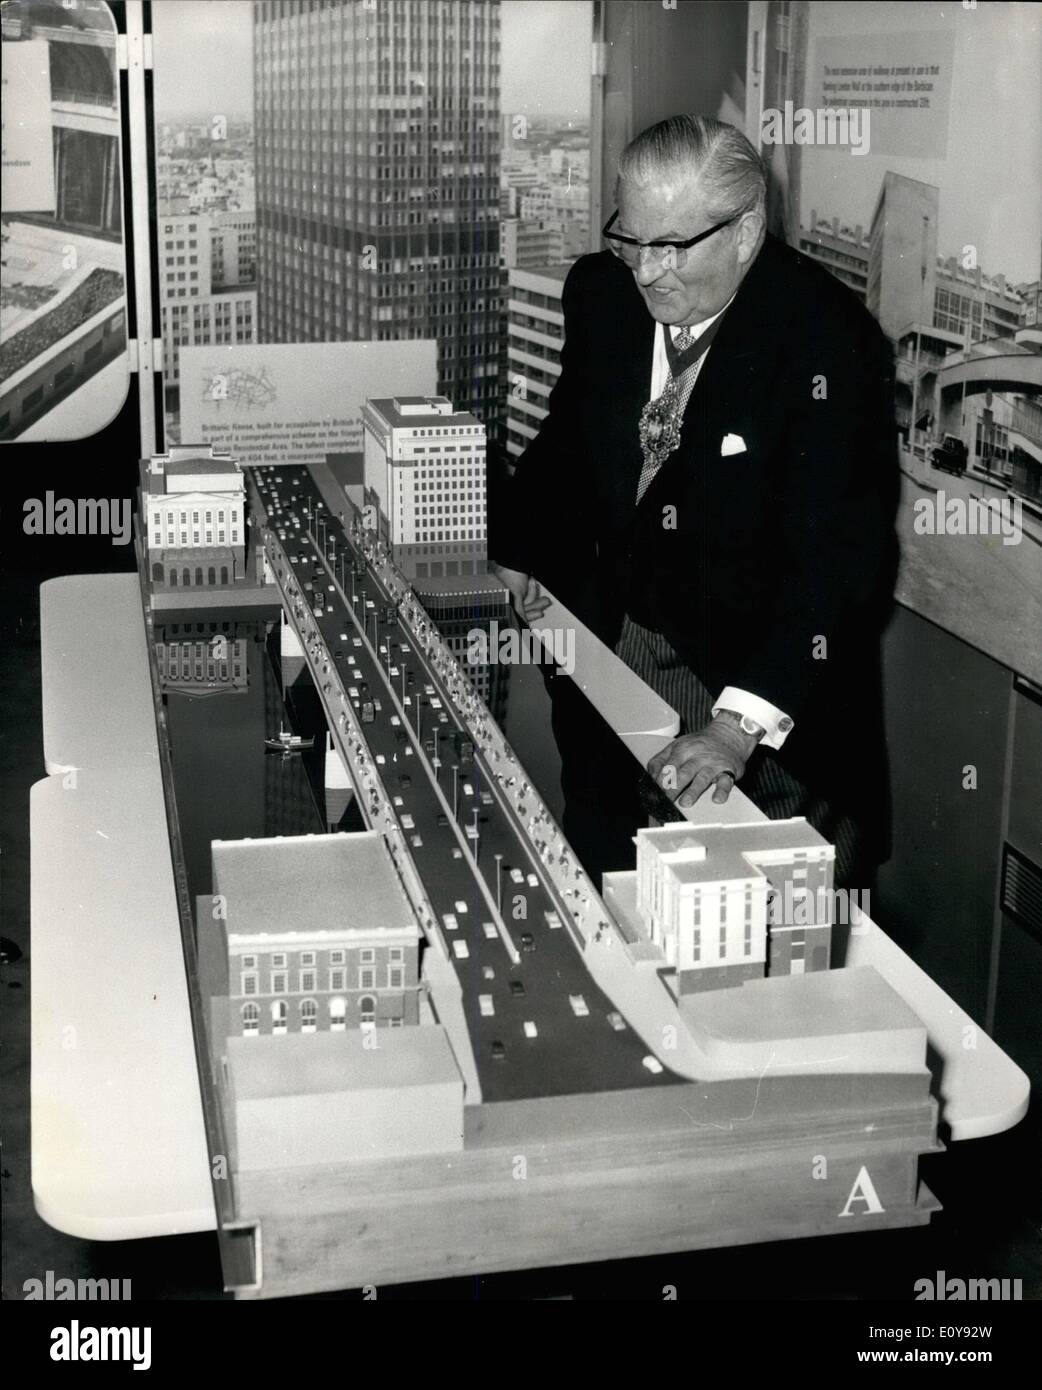 May 05, 1969 - Lord Mayor opens new City Exhibition: The Lord Mayor of London, Sir Charles Trinder, today officially opened a new Exhibition Hall which contains a display on the Modern City showing redevelopment in the Square Mile from Wren to the present day, a new Underground car park and new premises for the Guildhall Justice Room, all part of the Corporation of London's Reconstruction Scheme for Guildhall Precincts. Photo Shows The Lord Mayor of London, seen after the opening, examining a model of the new London Bridge. - Stock Image